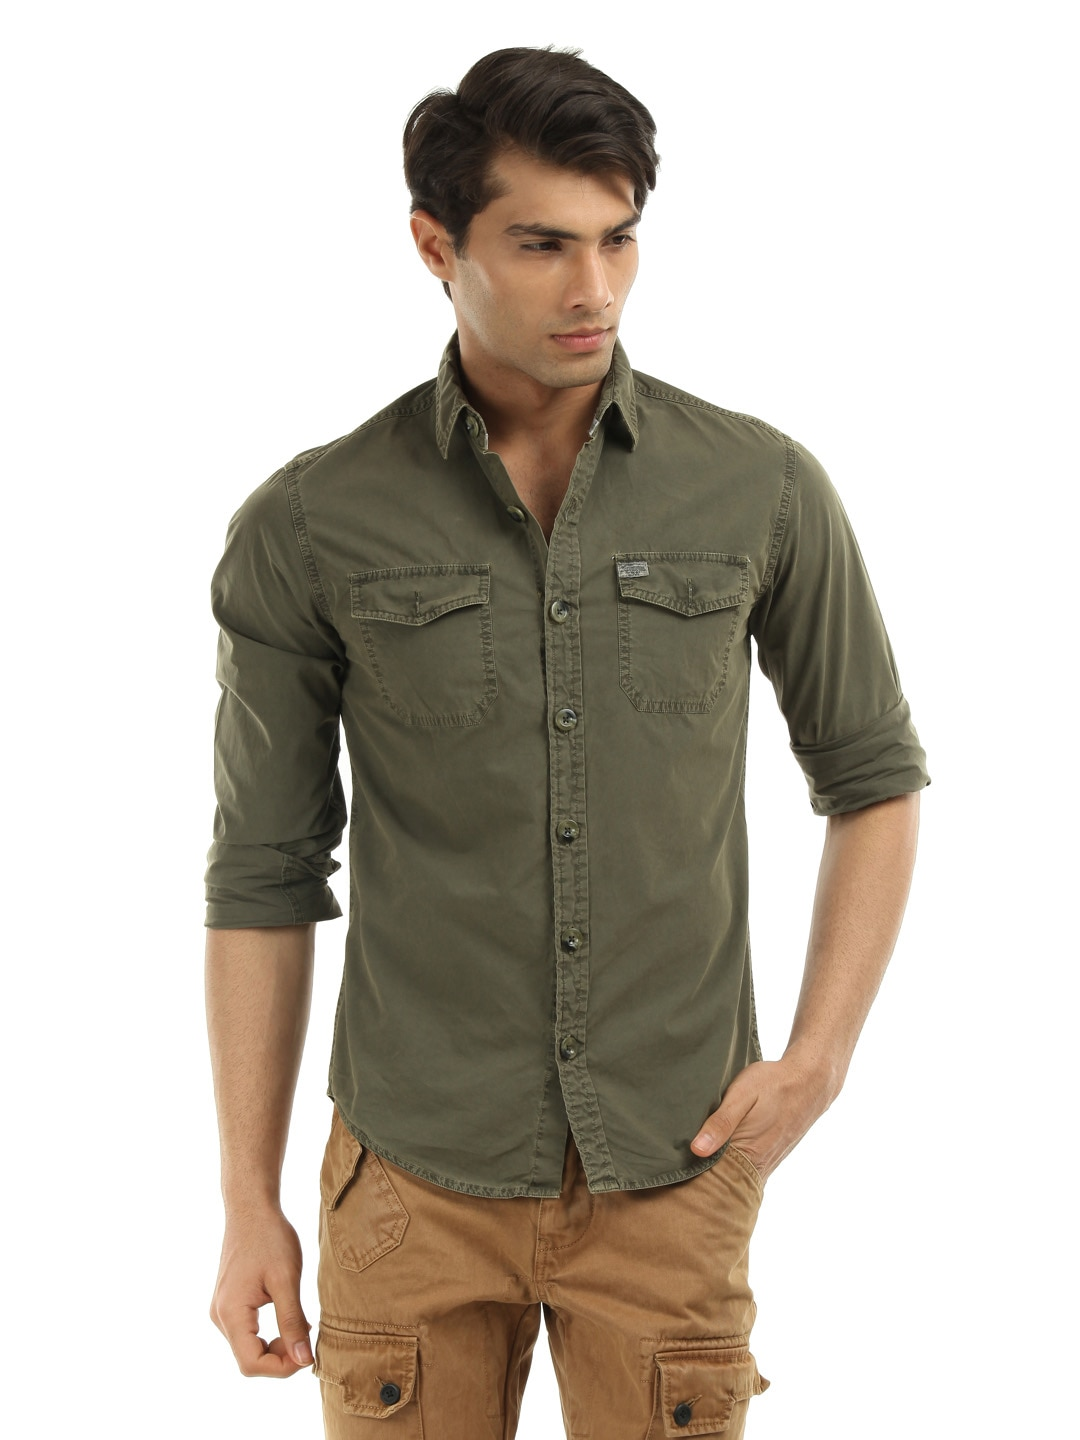 Olive Green Shirts For Men images